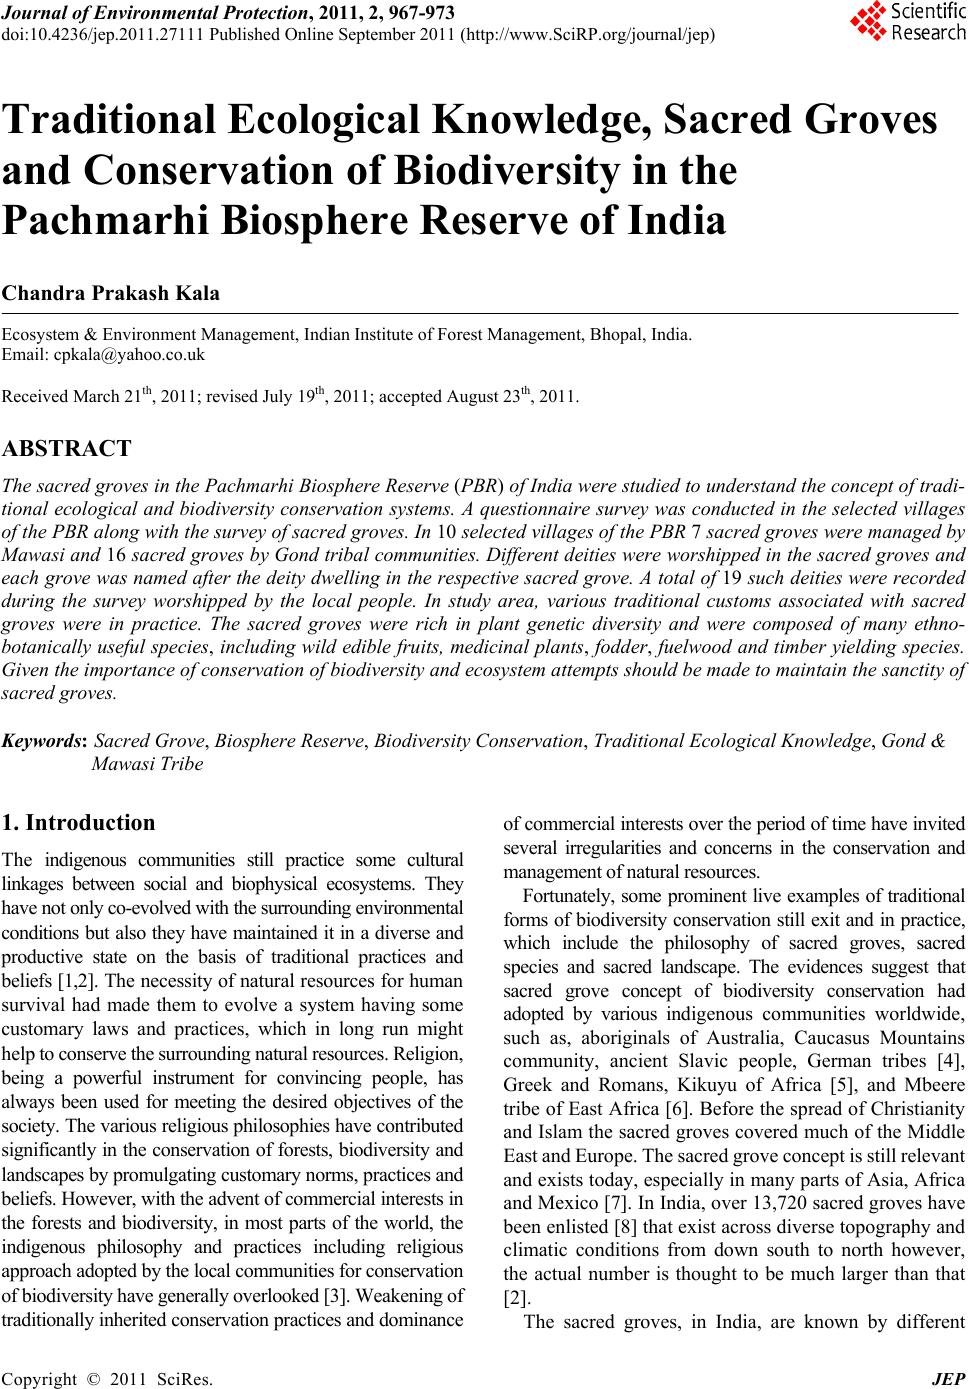 on conservation of biodiversity essay on conservation of biodiversity